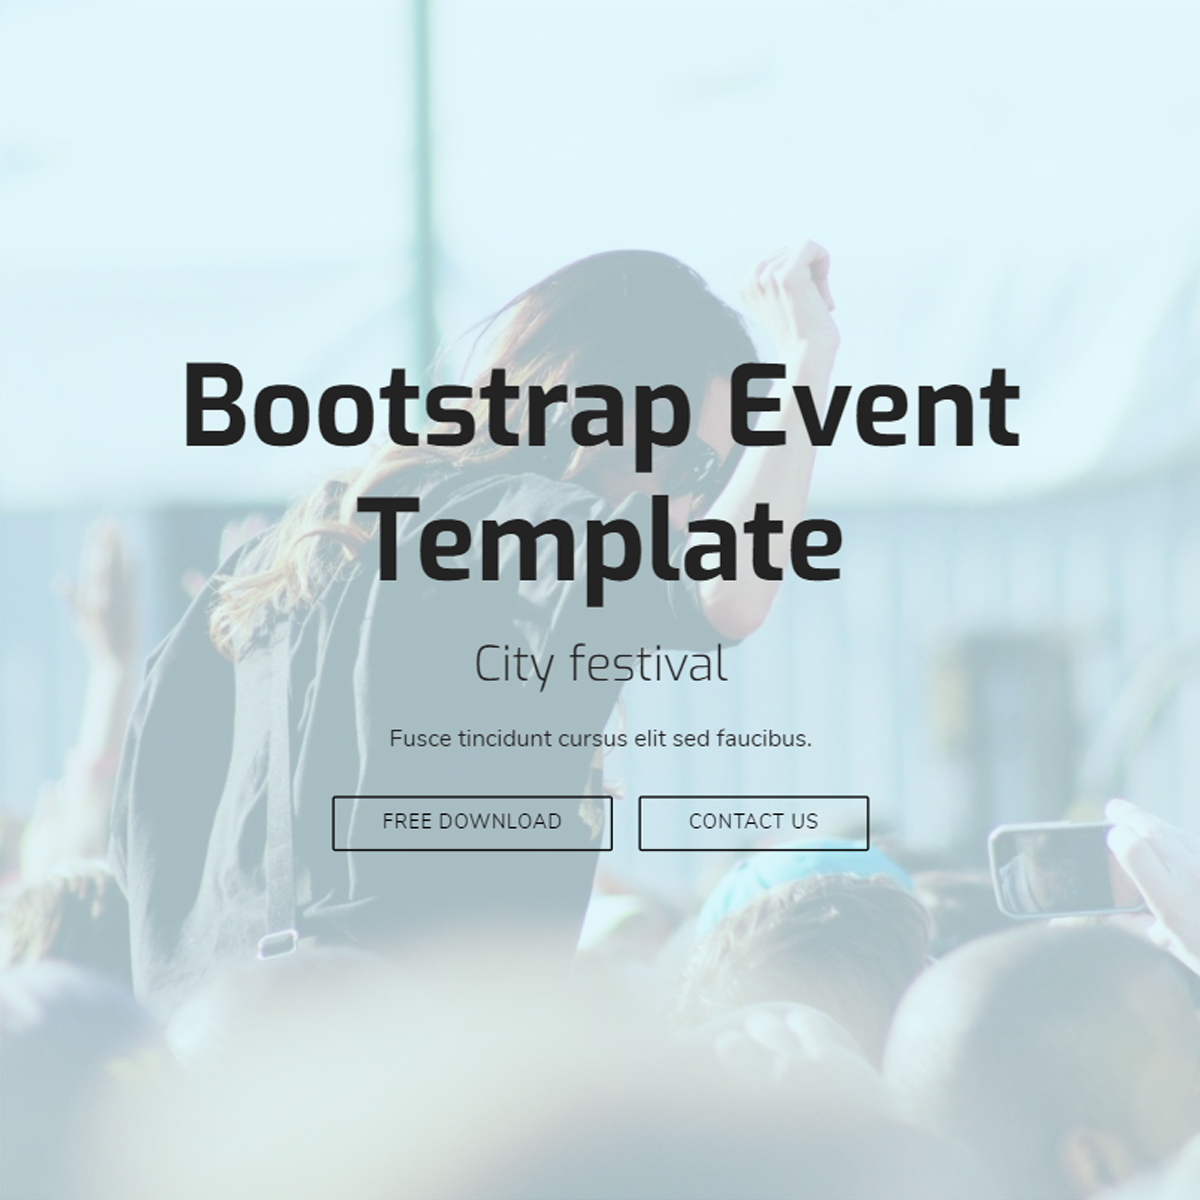 Free Download Bootstrap Event Templates